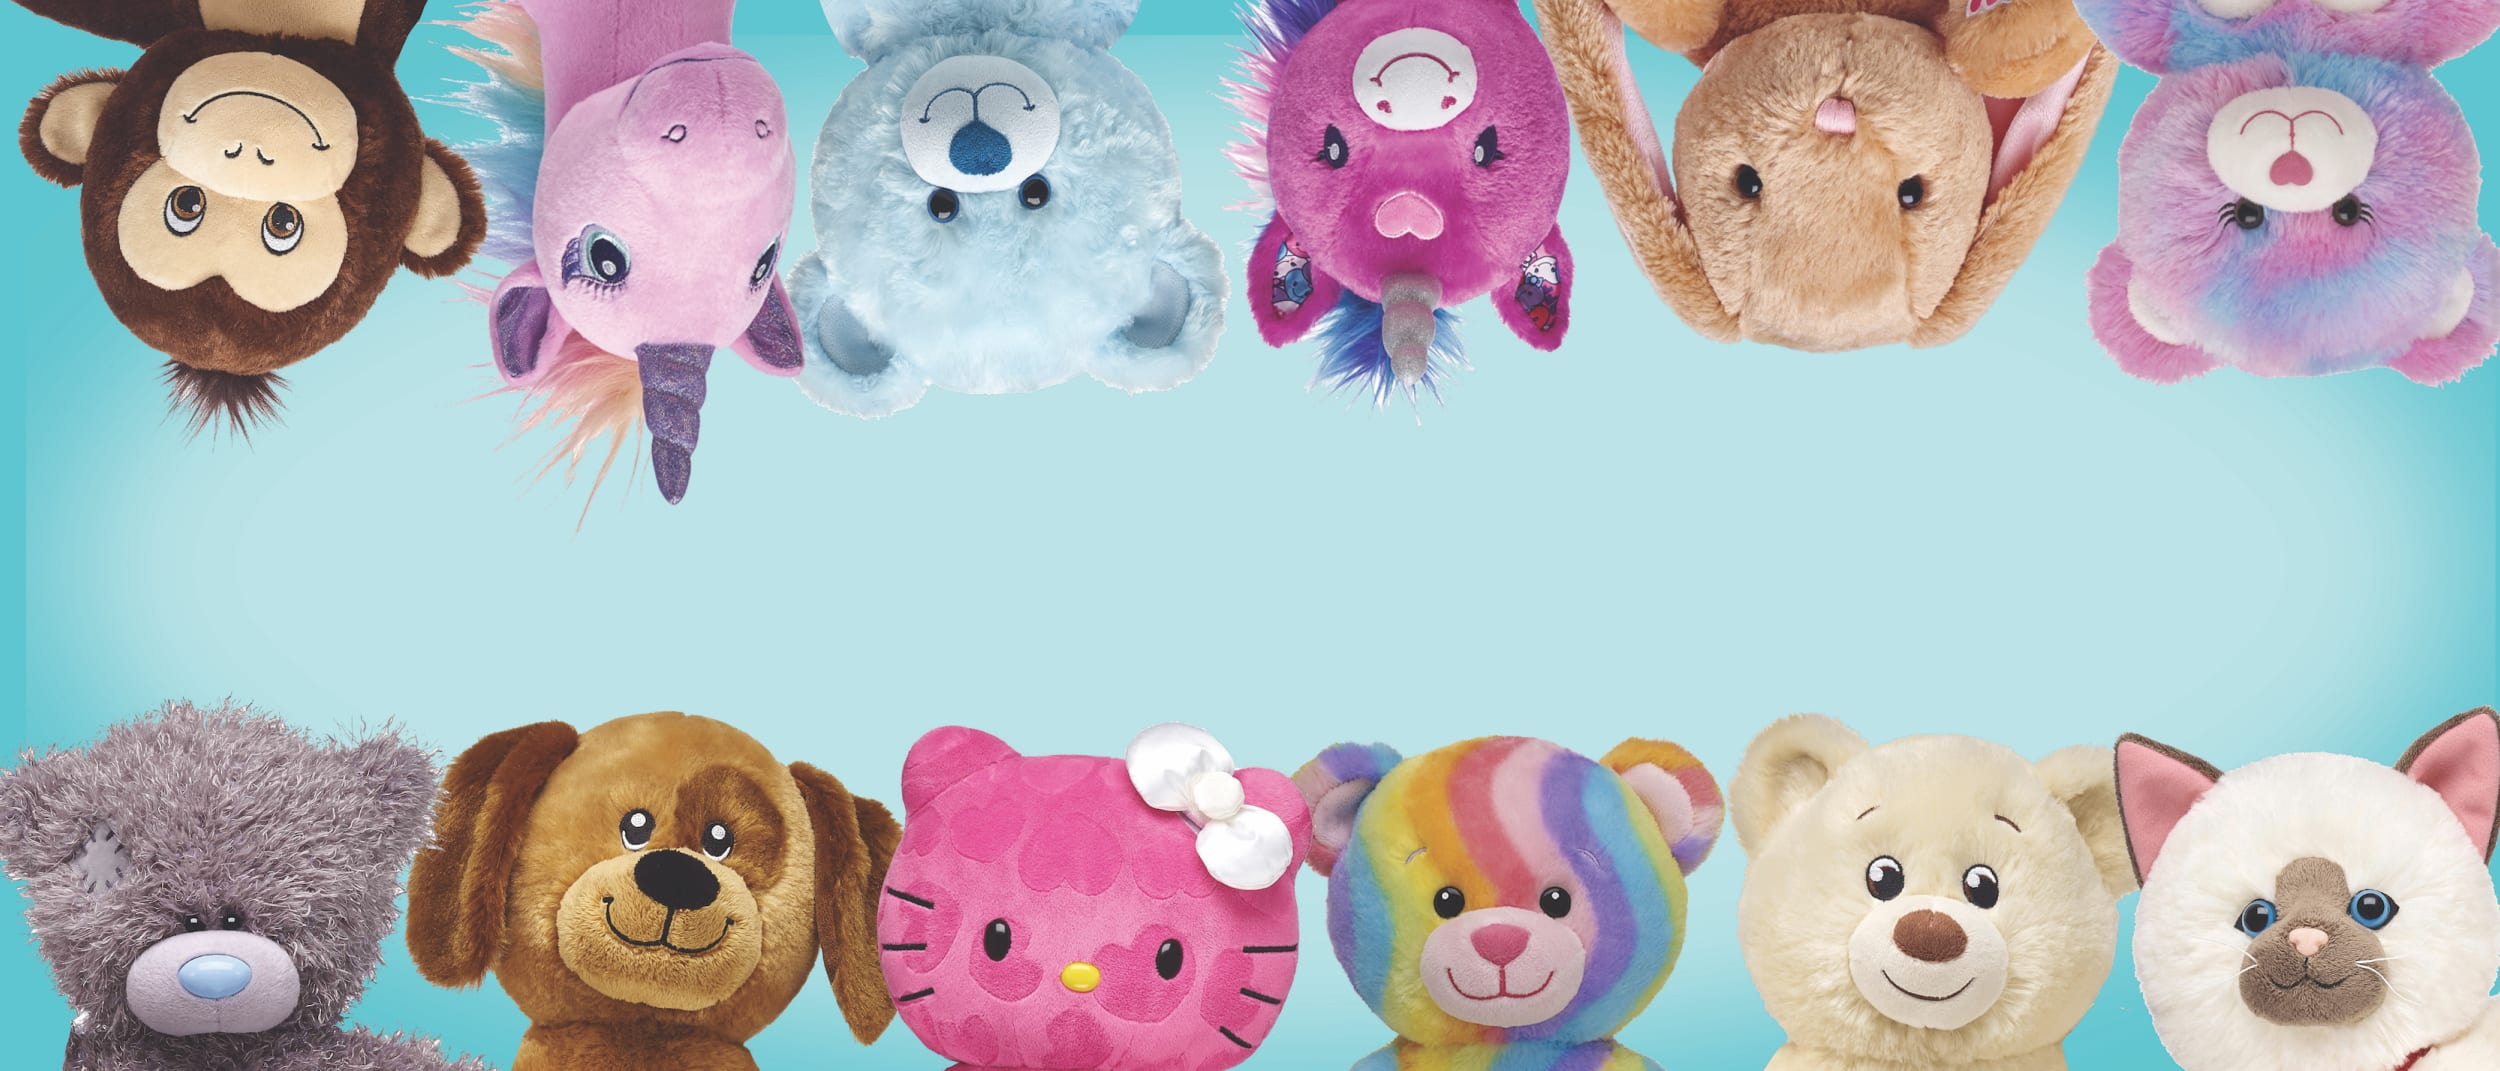 Pay Your Age at Build-A-Bear Workshop